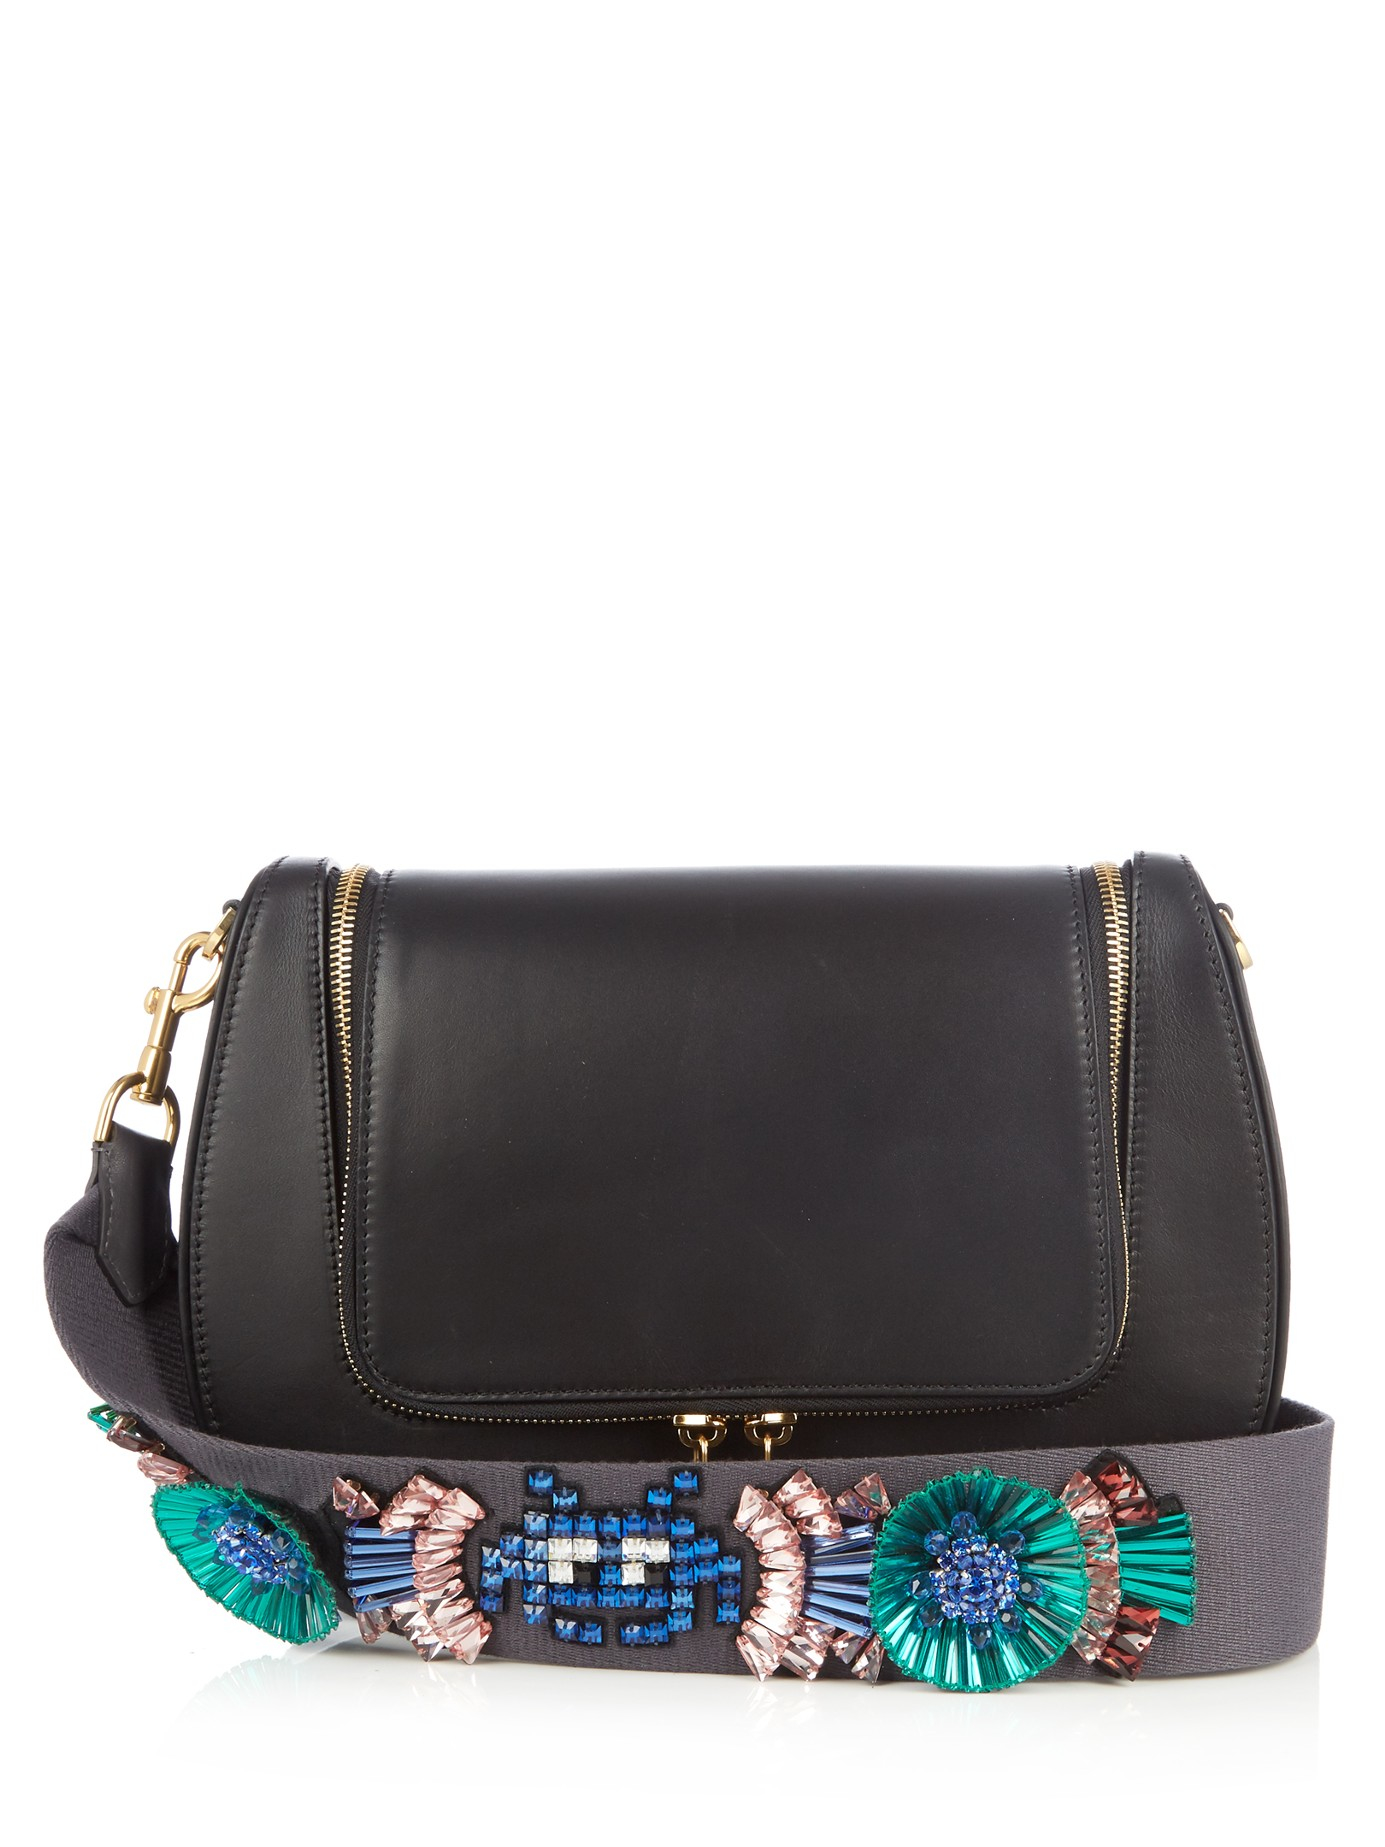 e73cf946ccf Lyst - Anya Hindmarch Space Invaders Vere Leather Cross-body Bag in ...